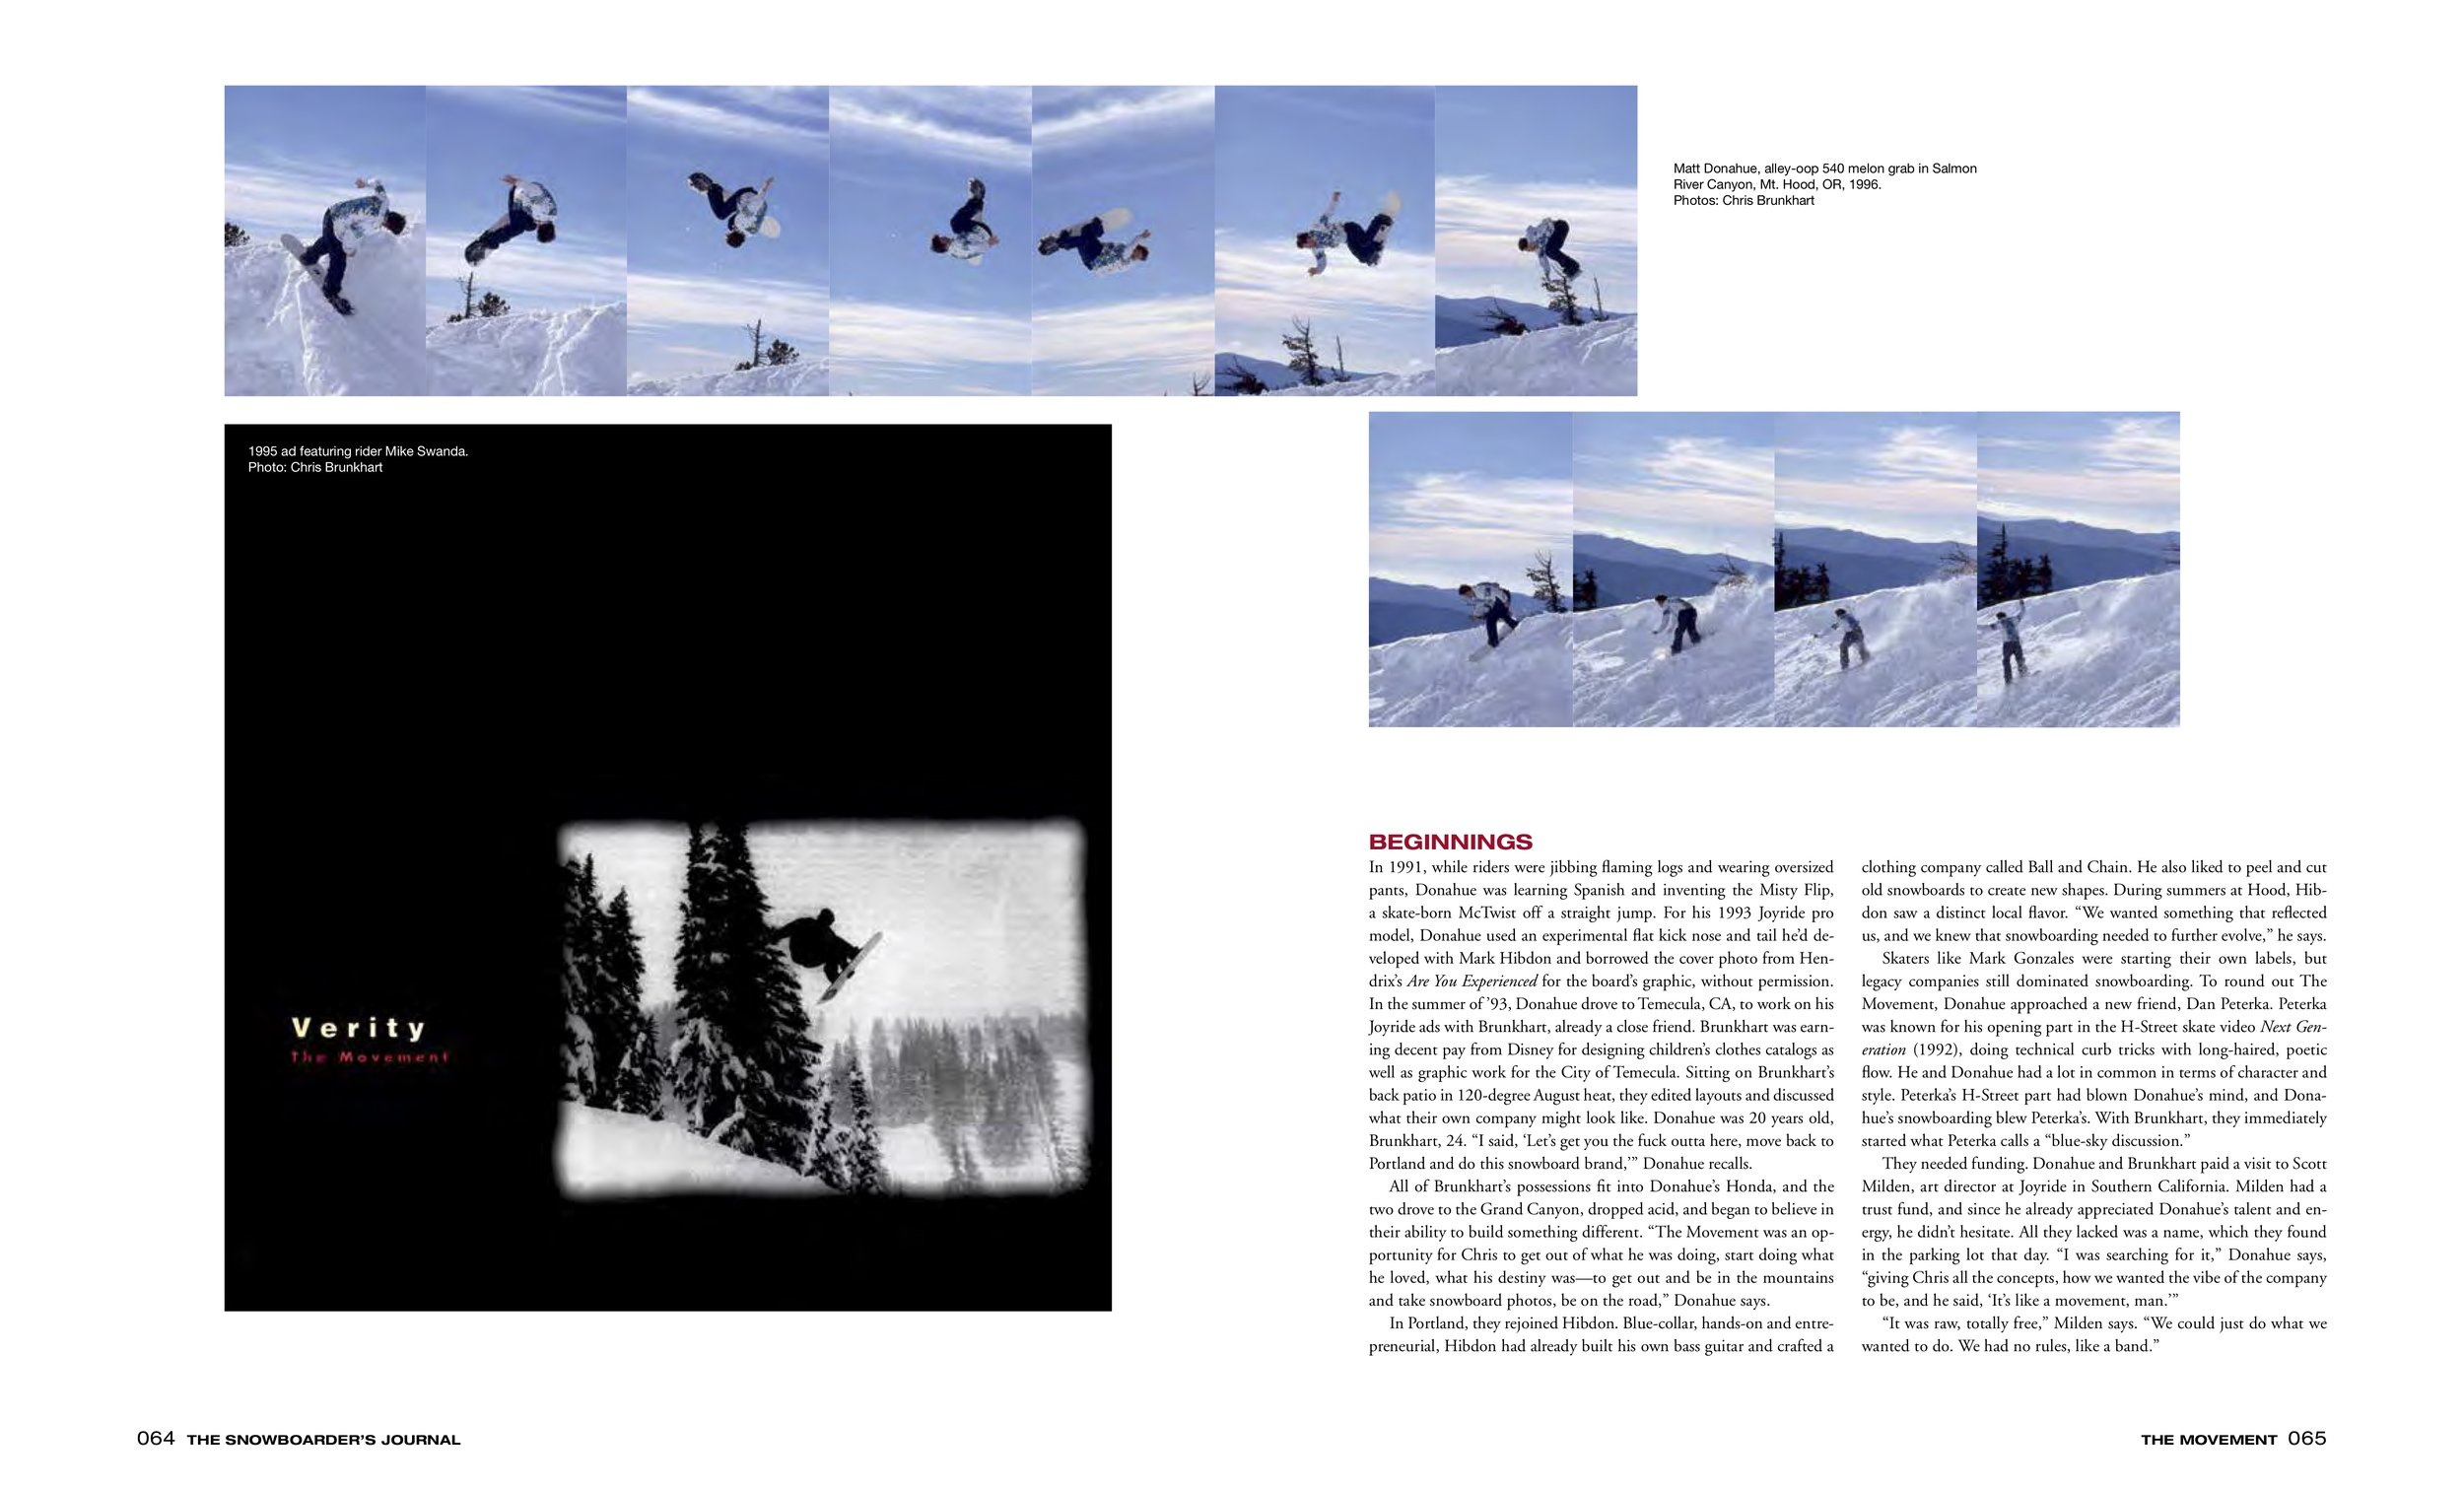 https://www.thesnowboardersjournal.com/issue_feature/the-movement-2/